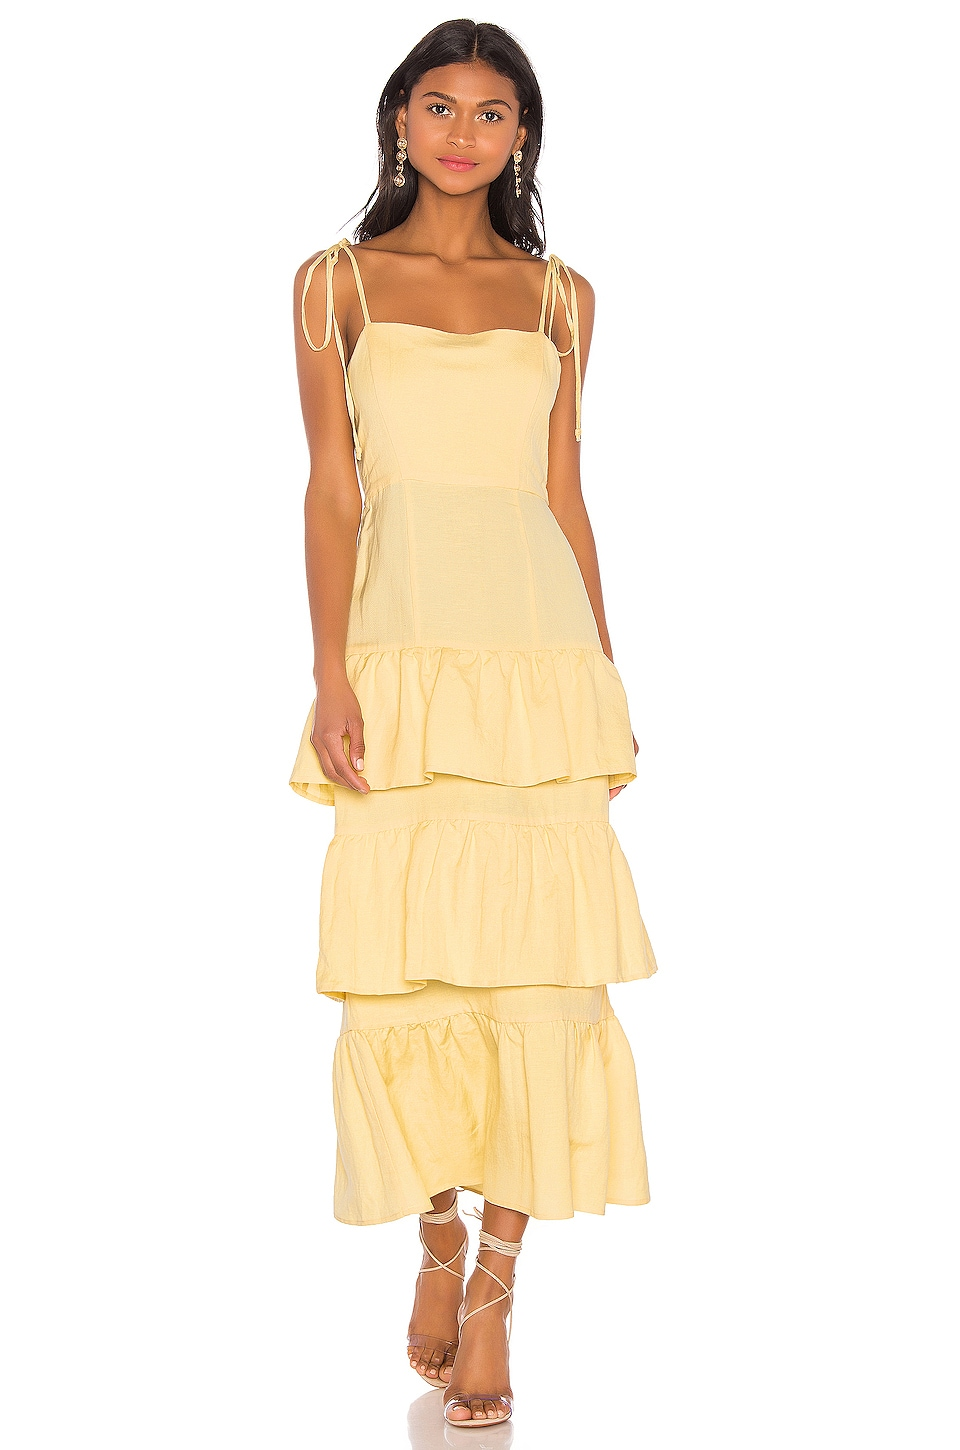 Capulet Quinn Tiered Dress in Lemon